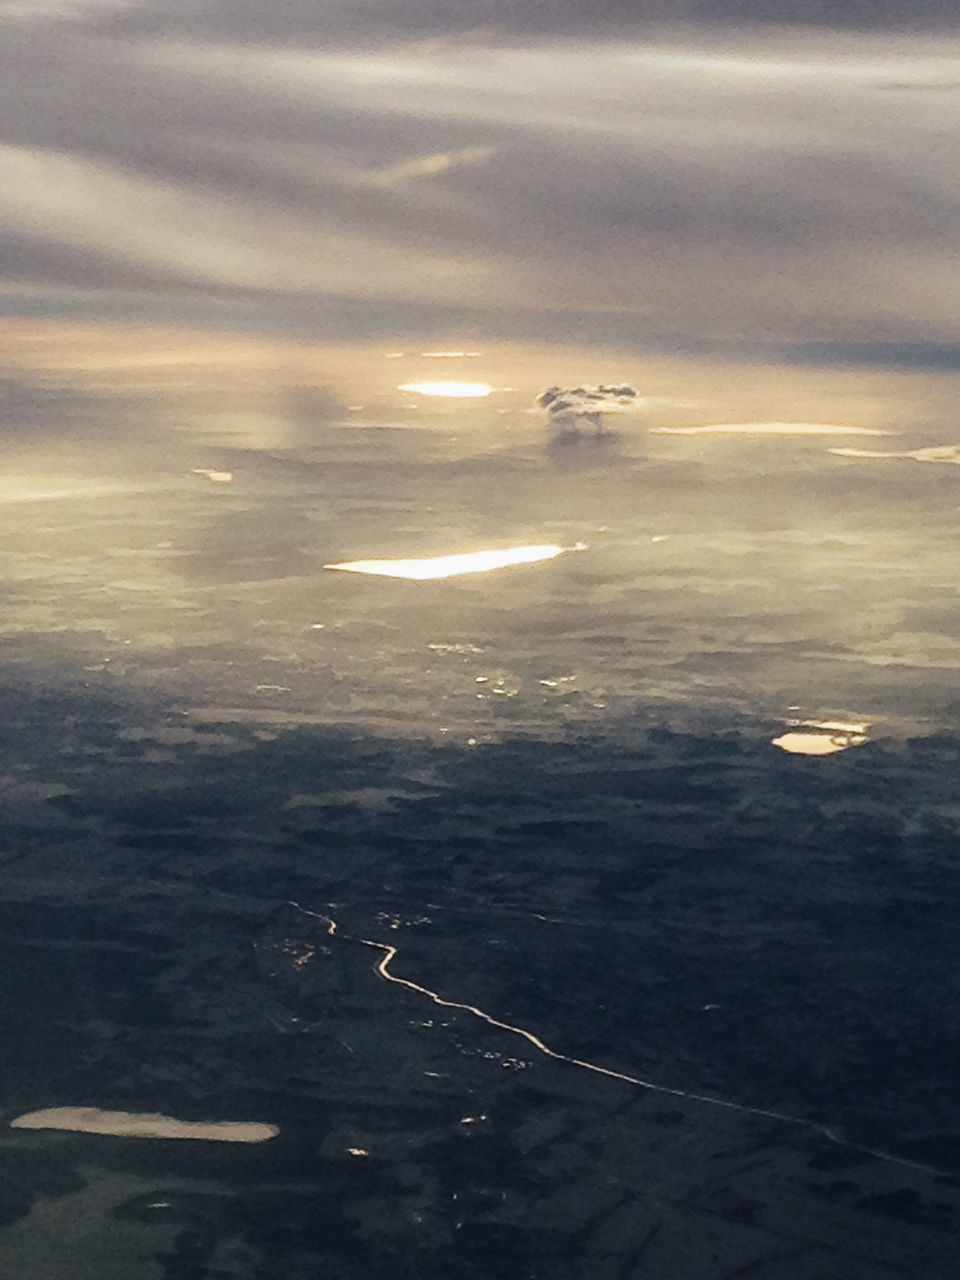 AIRPLANE FLYING OVER SEA AGAINST SKY AT SUNSET